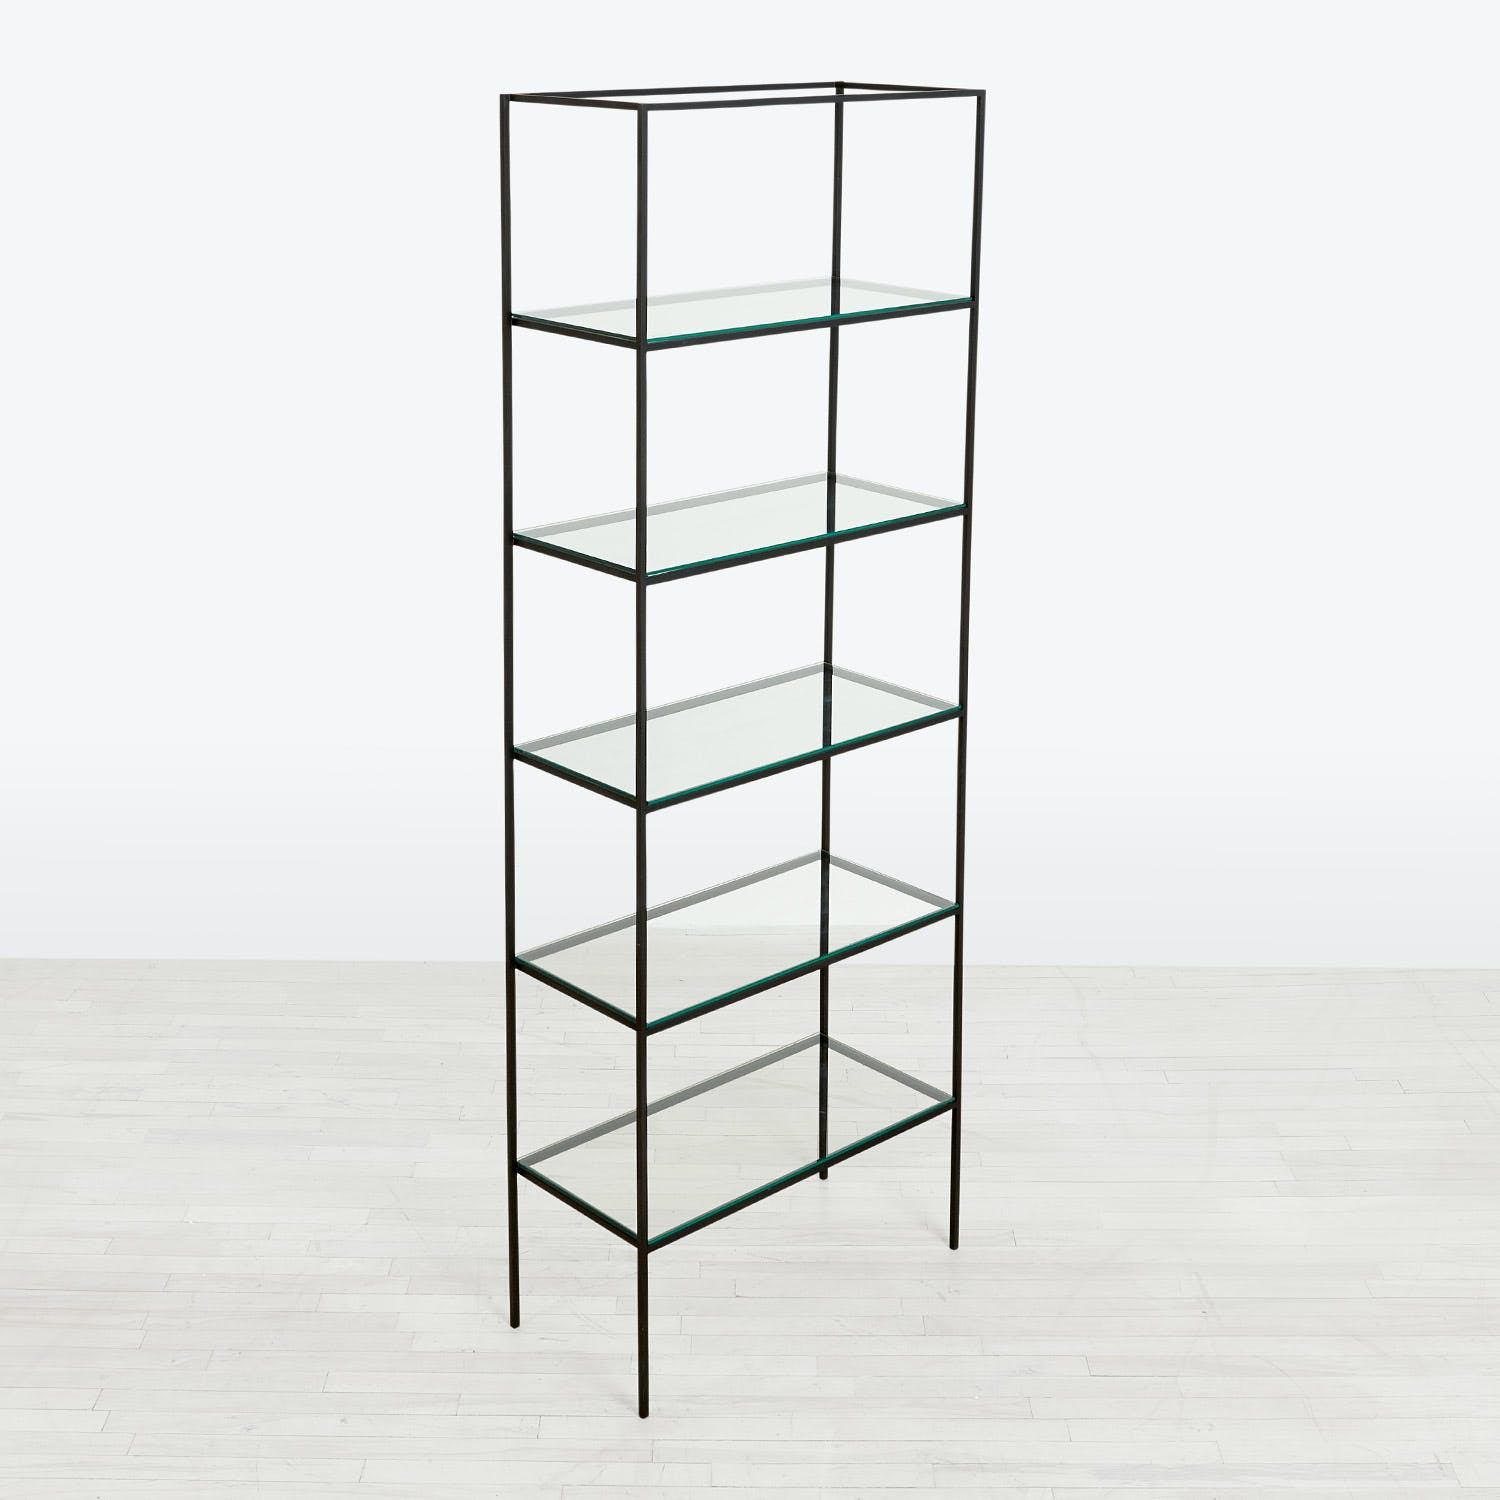 abcDNA Synthesis Glass 6-Tier Wide Shelving